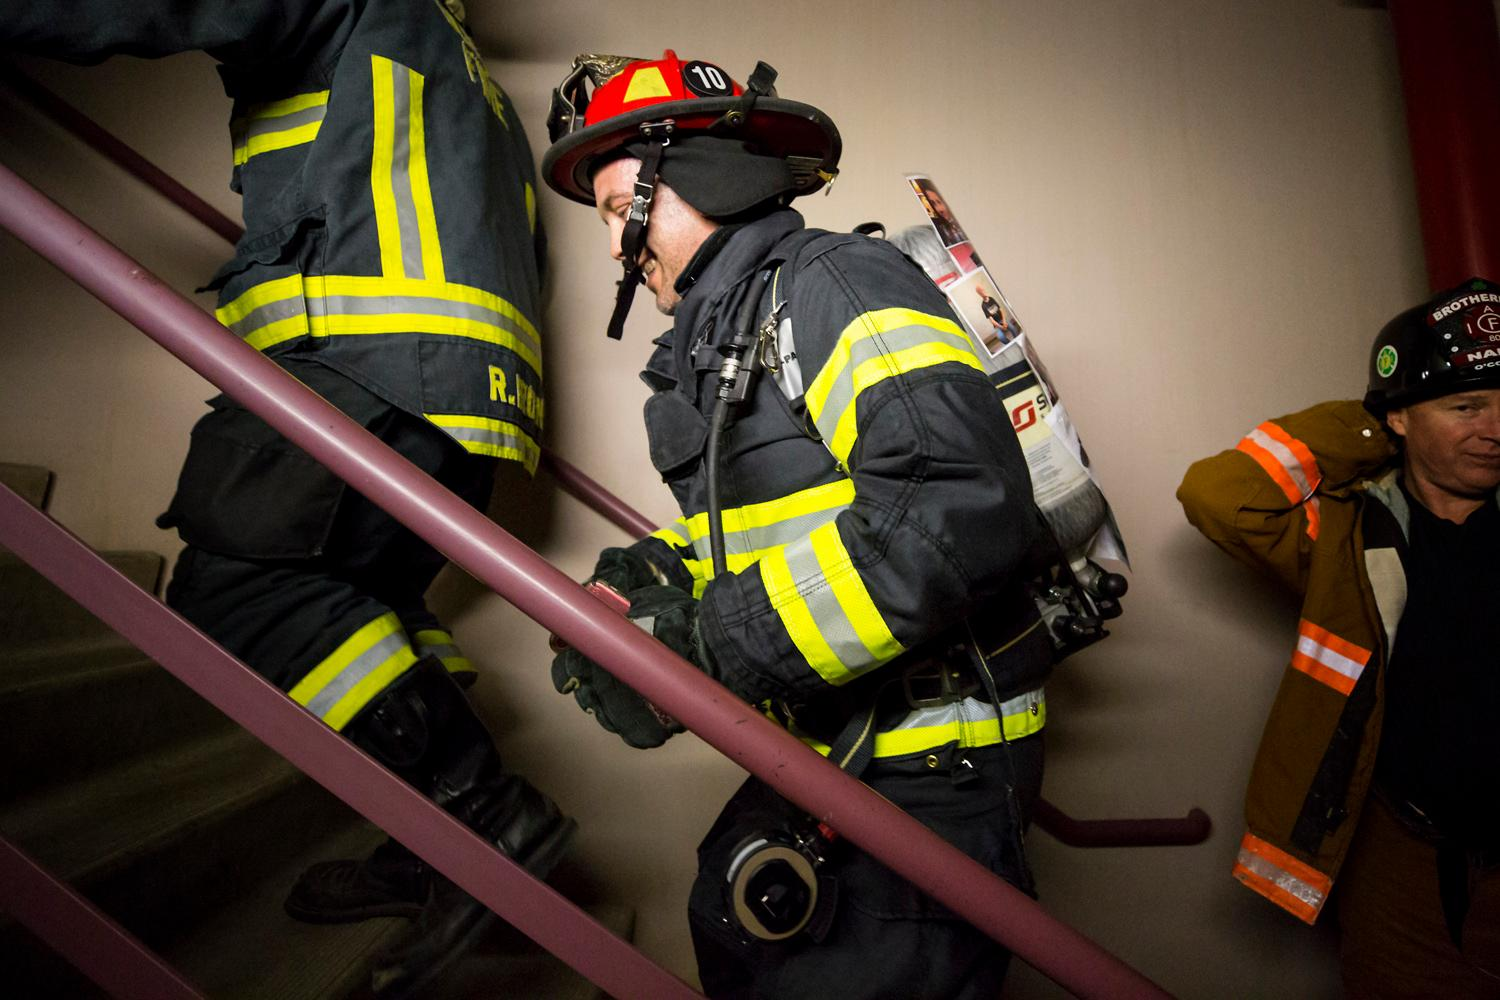 AJ from Warm 106.9 climbs up the 69 floors of the Columbia Tower during a training climb foor the Scott Firefighter Stairclimb on Friday, March 9, 2018. 2,000 firefighters are expected the 69 floors (1,356 stairs!) on Sunday for the Scott Firefighter Stairclimb to benefit the Leukemia & Lymphoma Society. To donate to this cause, please visit www.firefighterstairclimb.org. (Sy Bean / Seattle Refined)